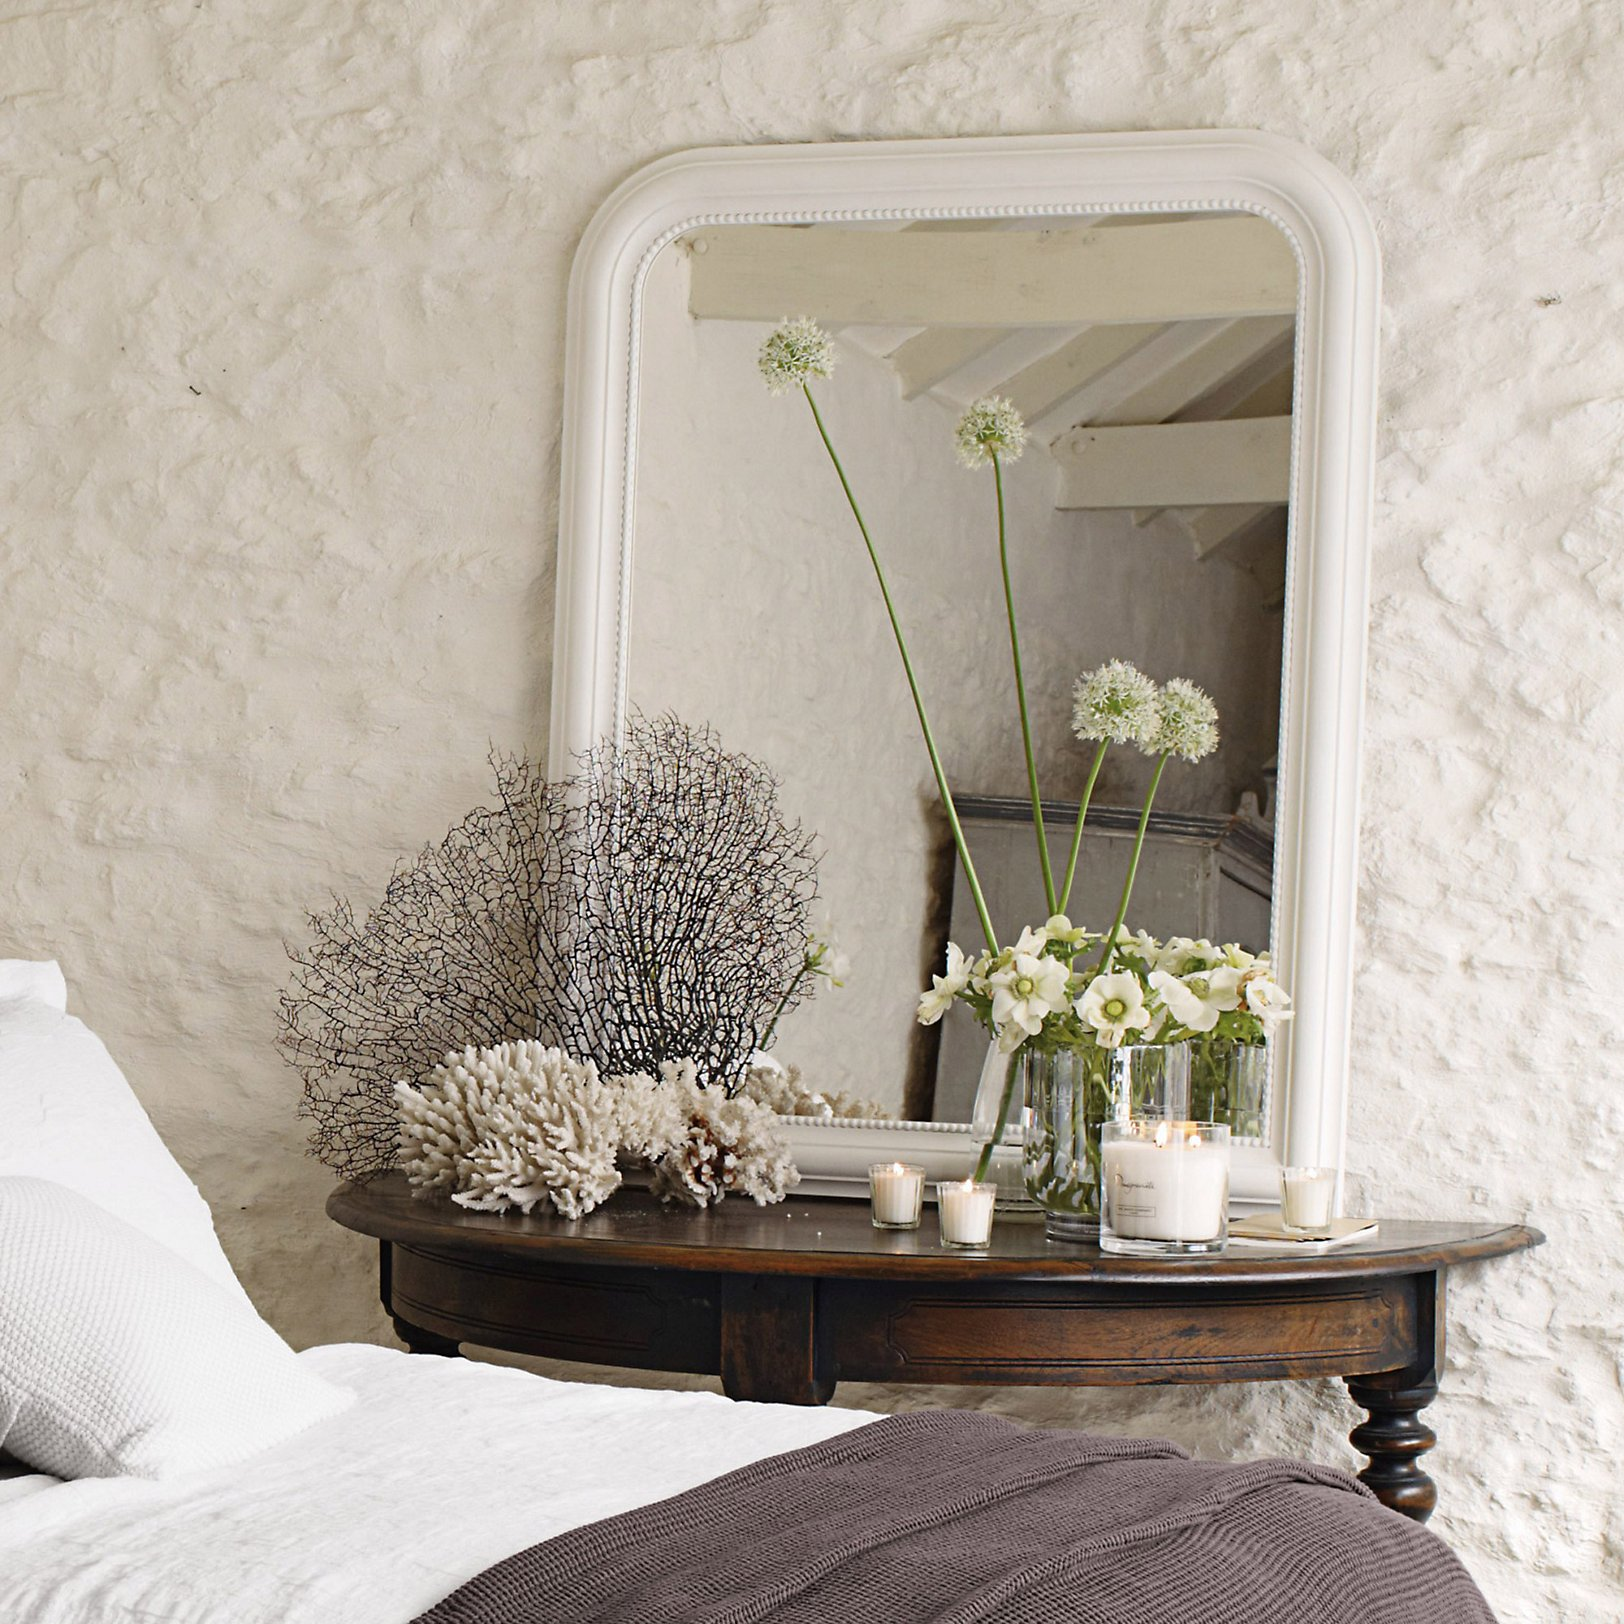 Silver Mirrors For Bedroom Mirrors Wall Floor Dressing Table Full Length The White